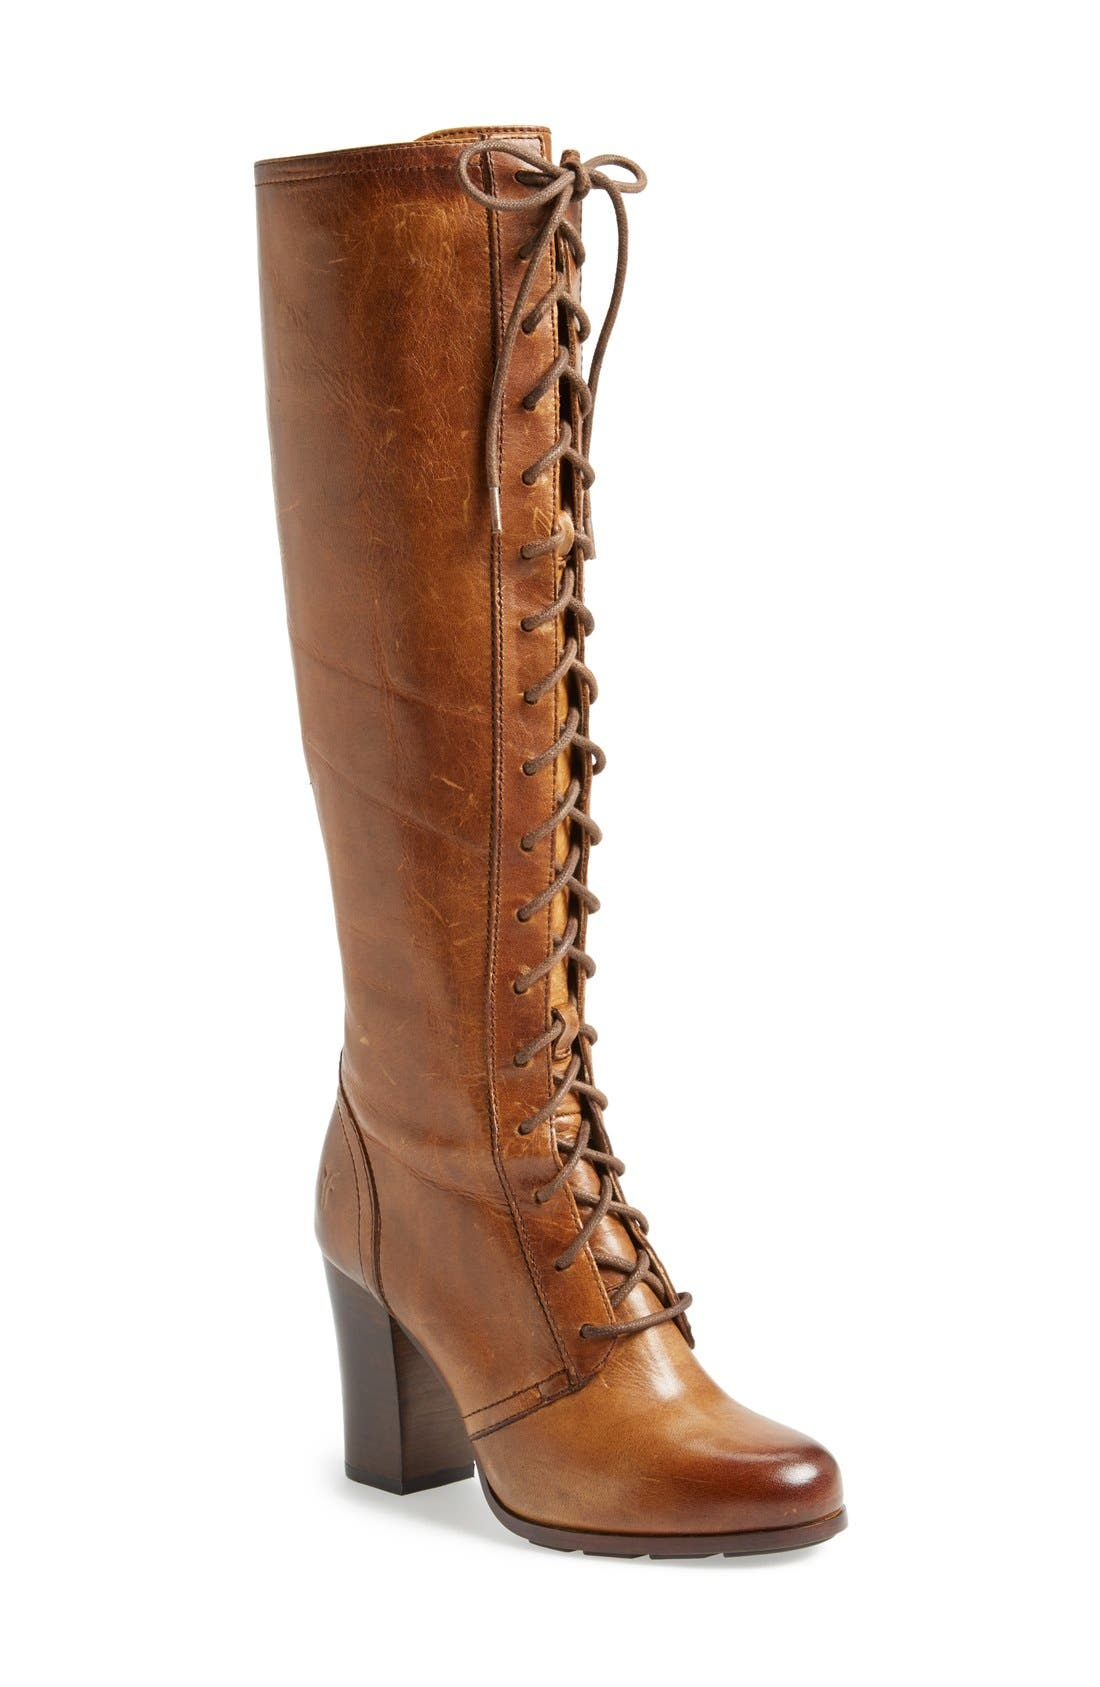 Main Image - Frye 'Parker' Lace-Up Tall Boot (Women)